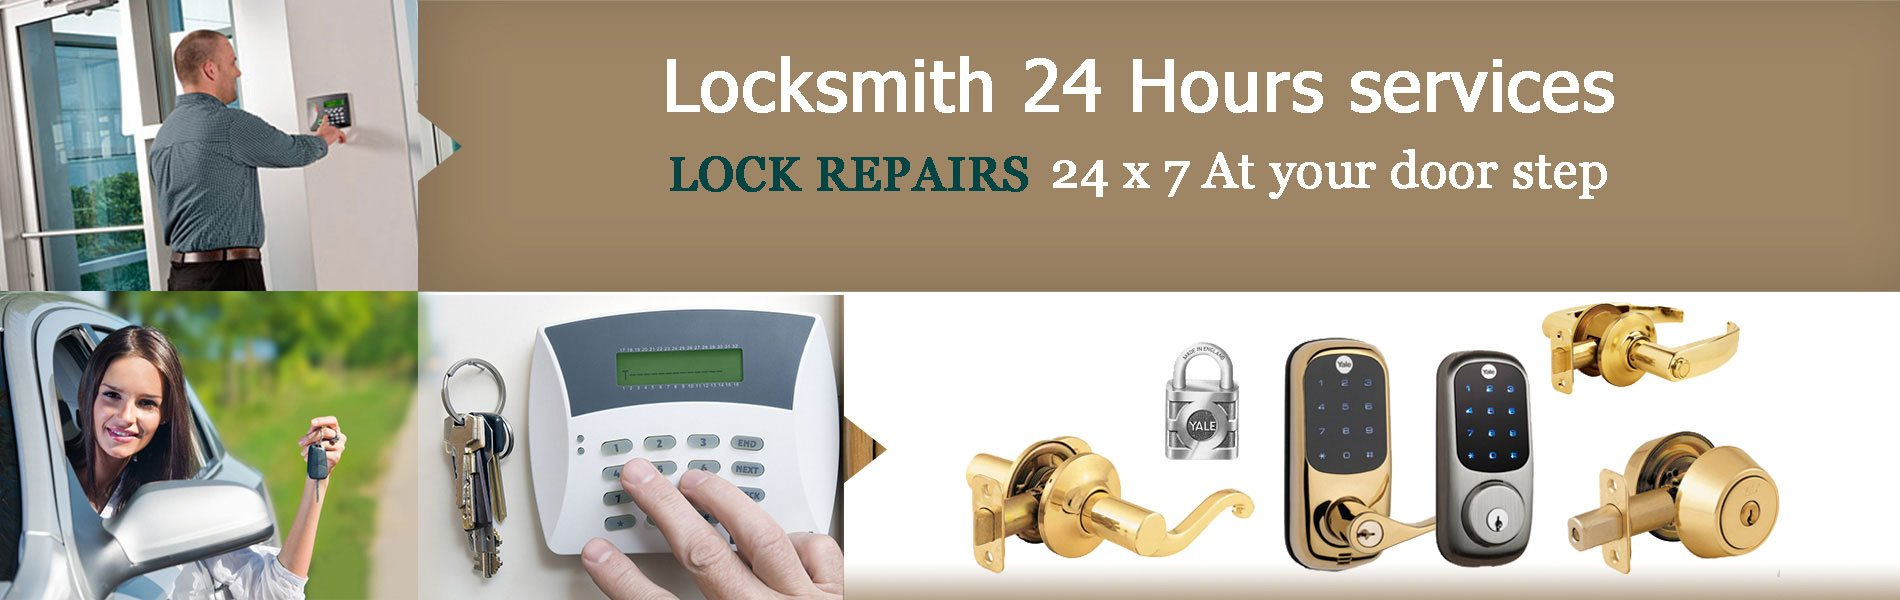 Elite Locksmith Services New York, NY 212-547-9787